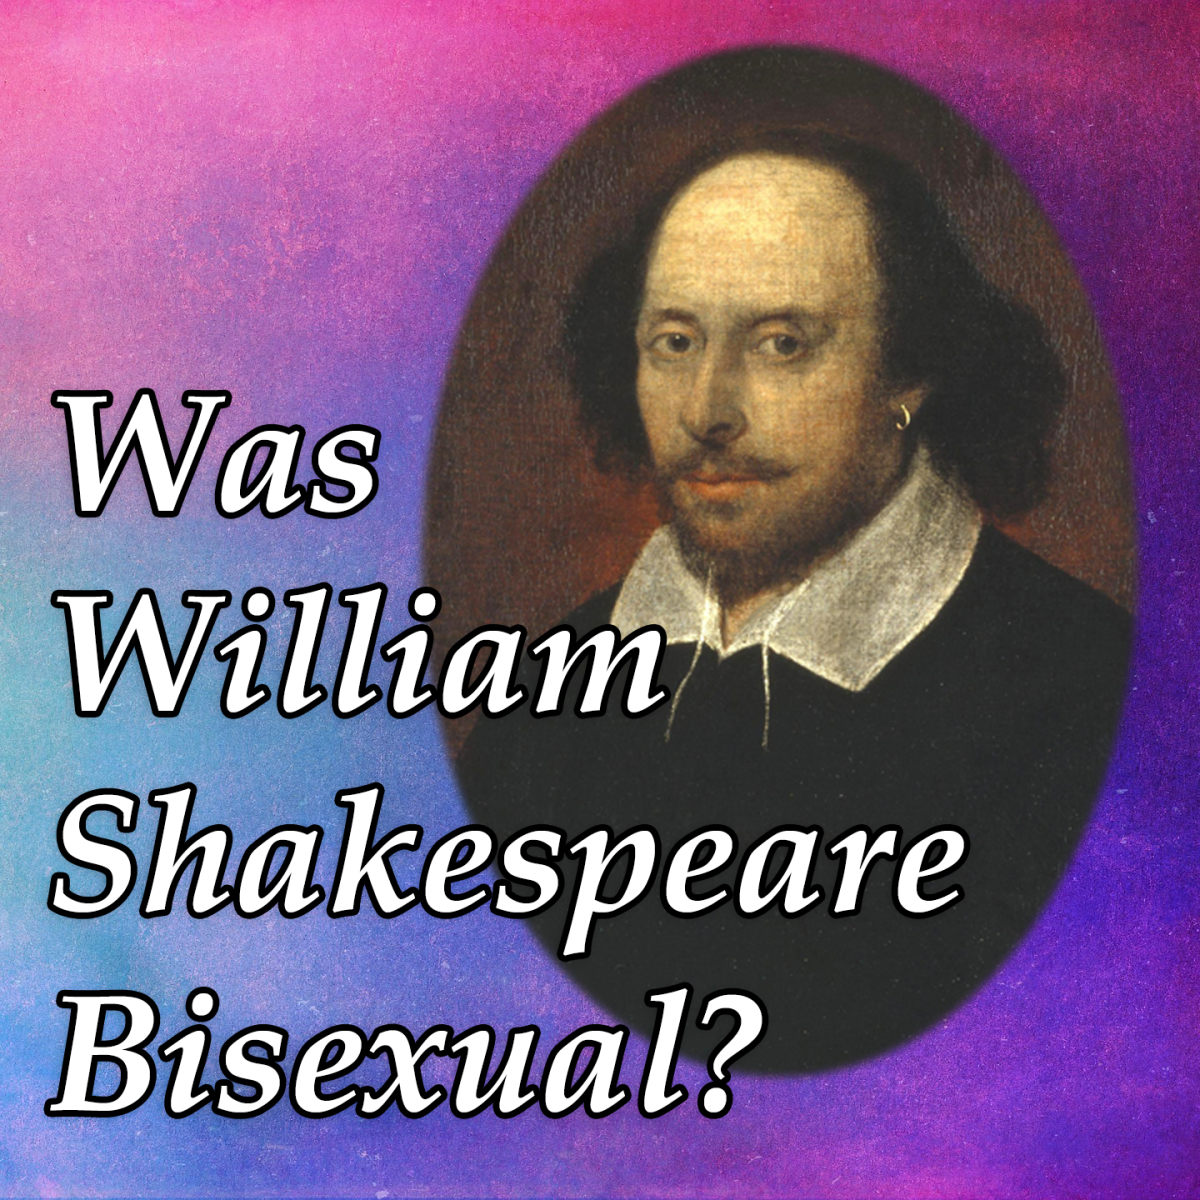 Was William Shakespeare Bisexual? – Exploring the Bard's Sexual Orientation